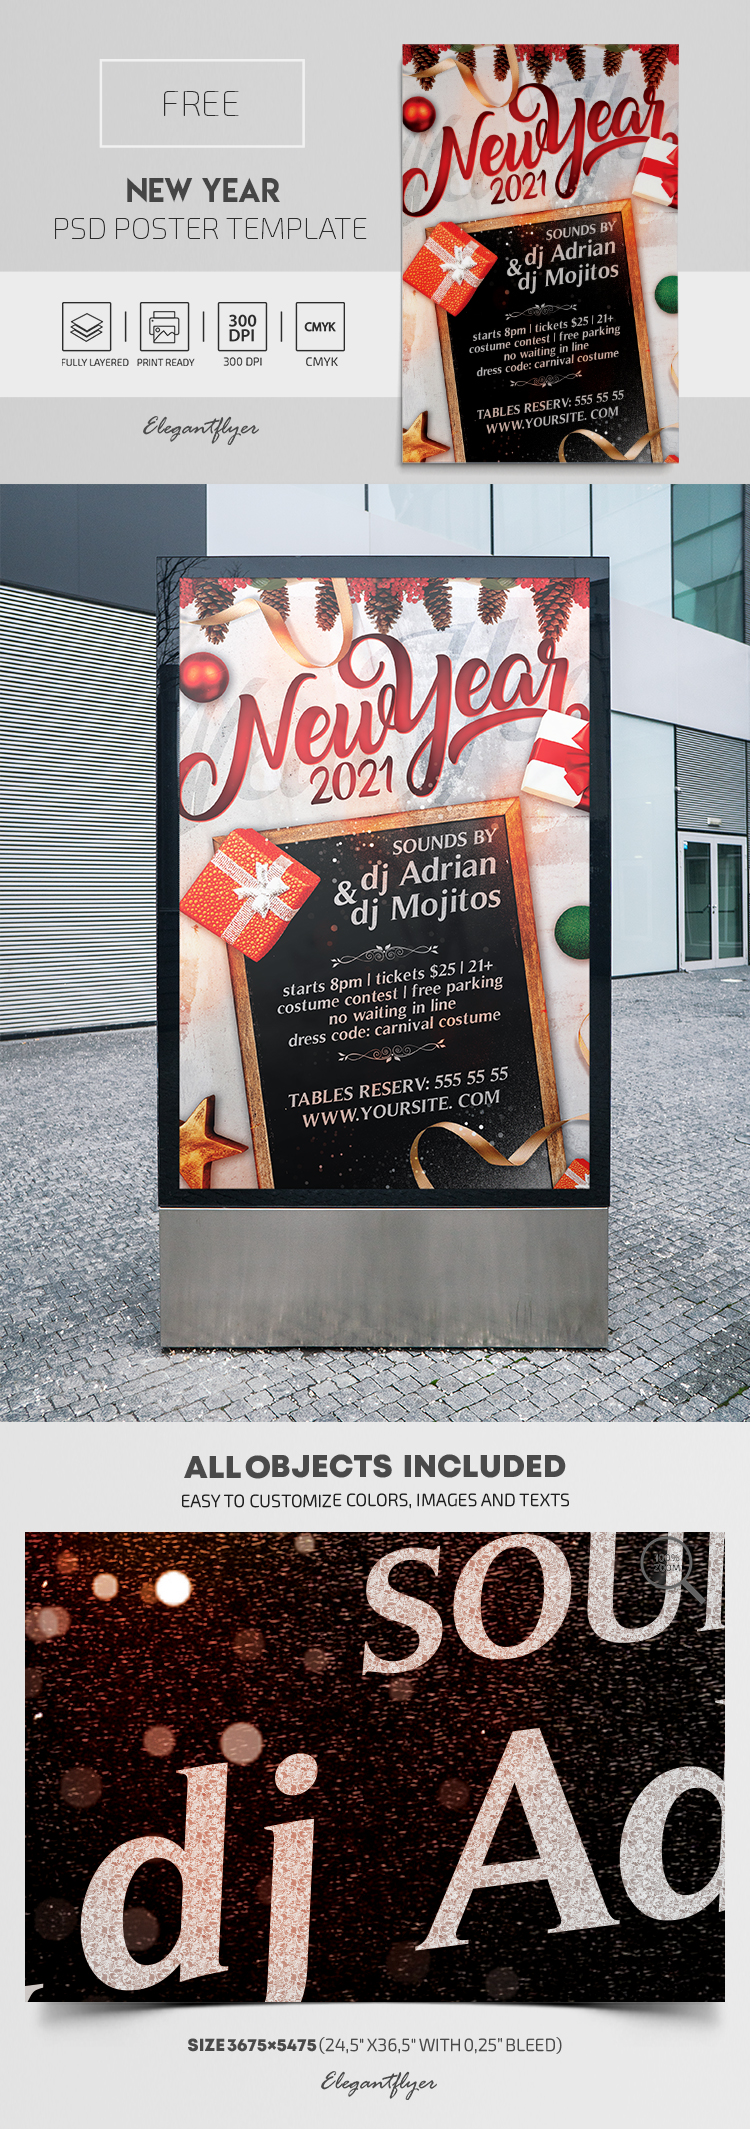 New Year – Free PSD Poster Template